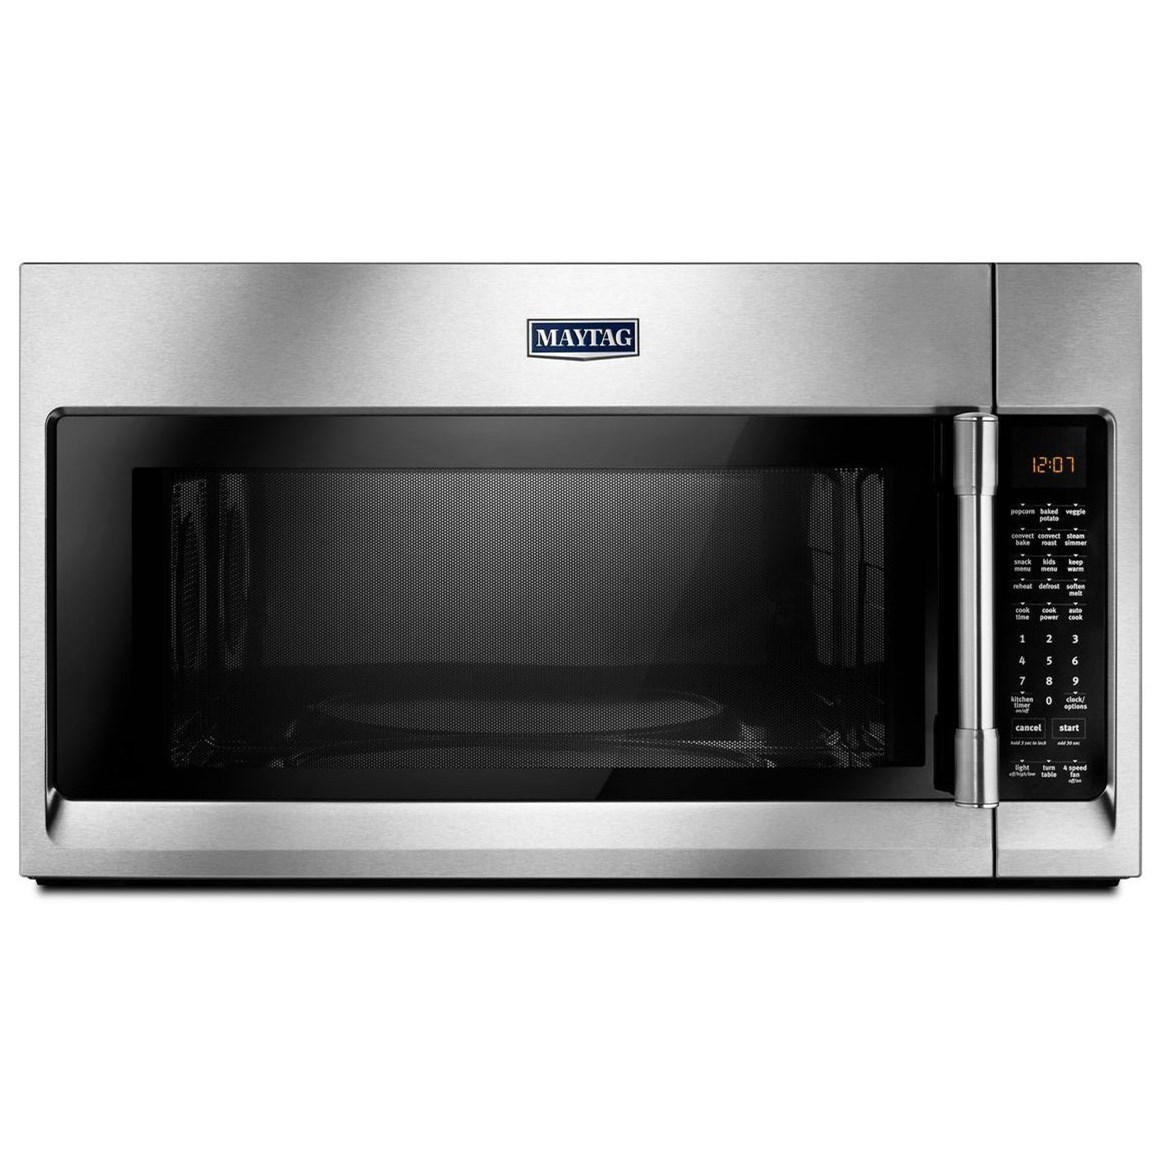 Microwaves Over-The-Range Microwave With Convection by Maytag at Westrich Furniture & Appliances